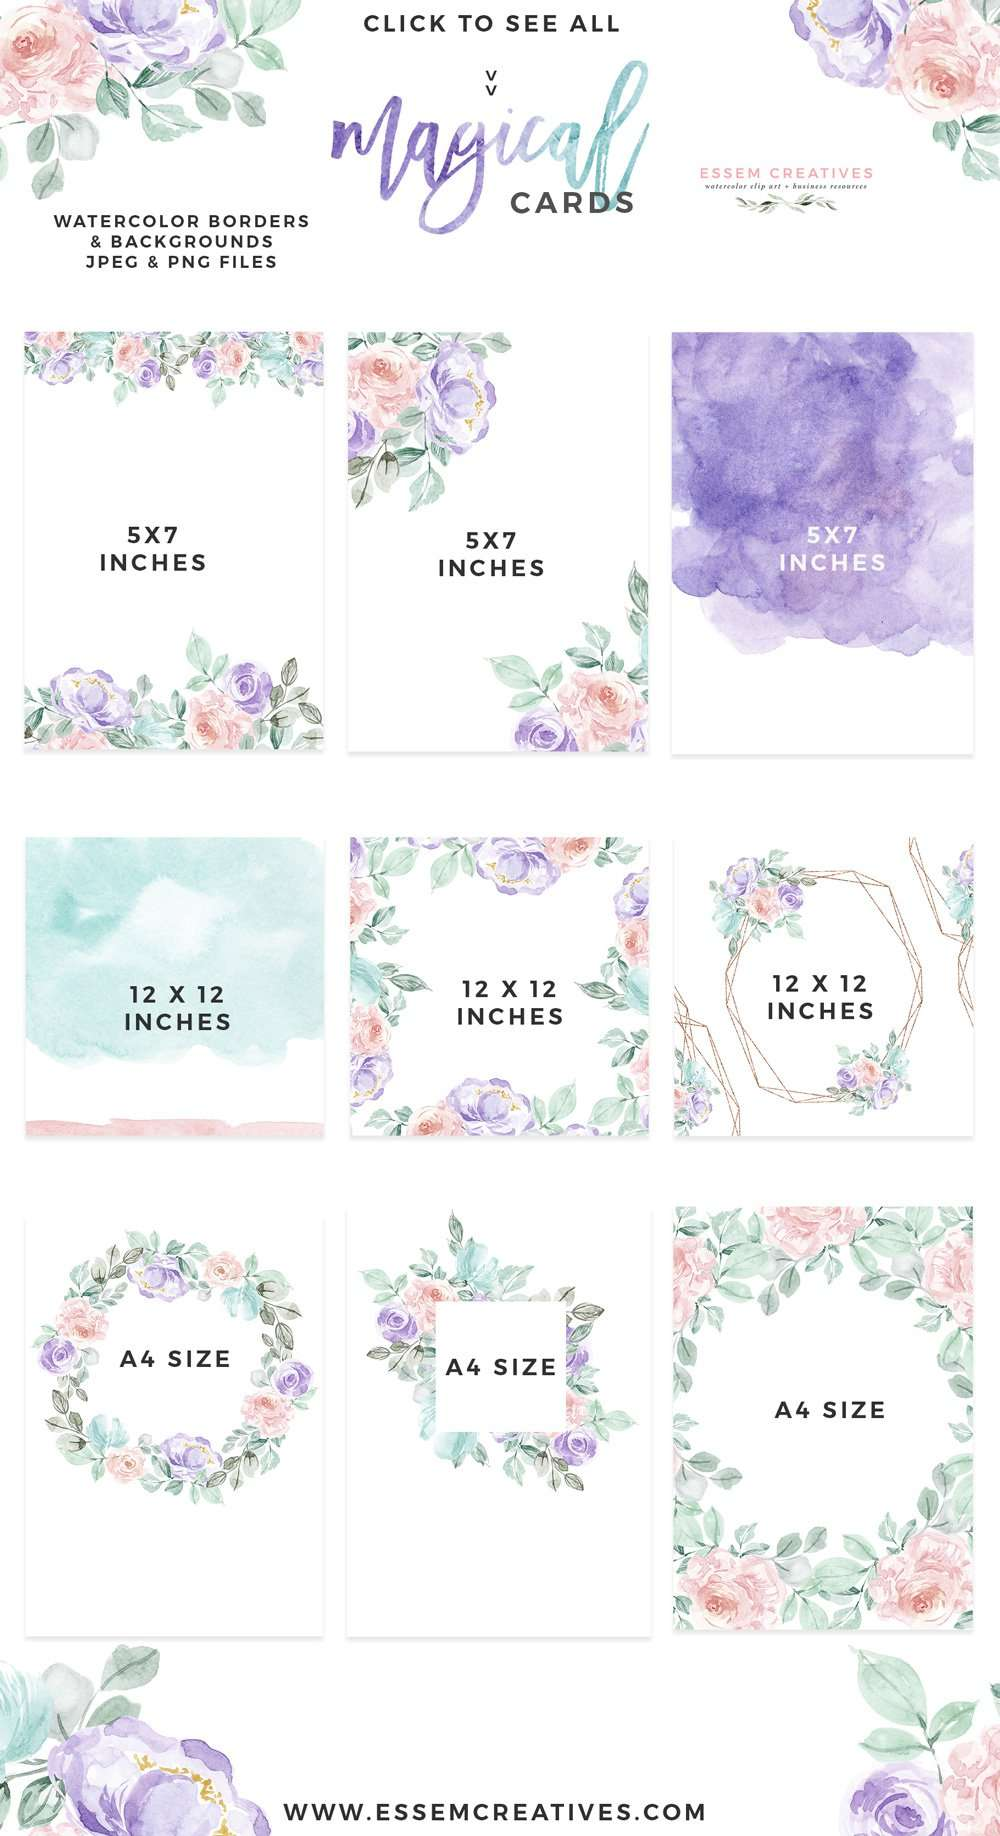 watercolor floral card border png background vintage purple pink table number wedding invitation signs watercolor floral card border png background vintage purple pink table number wedding invitation signs